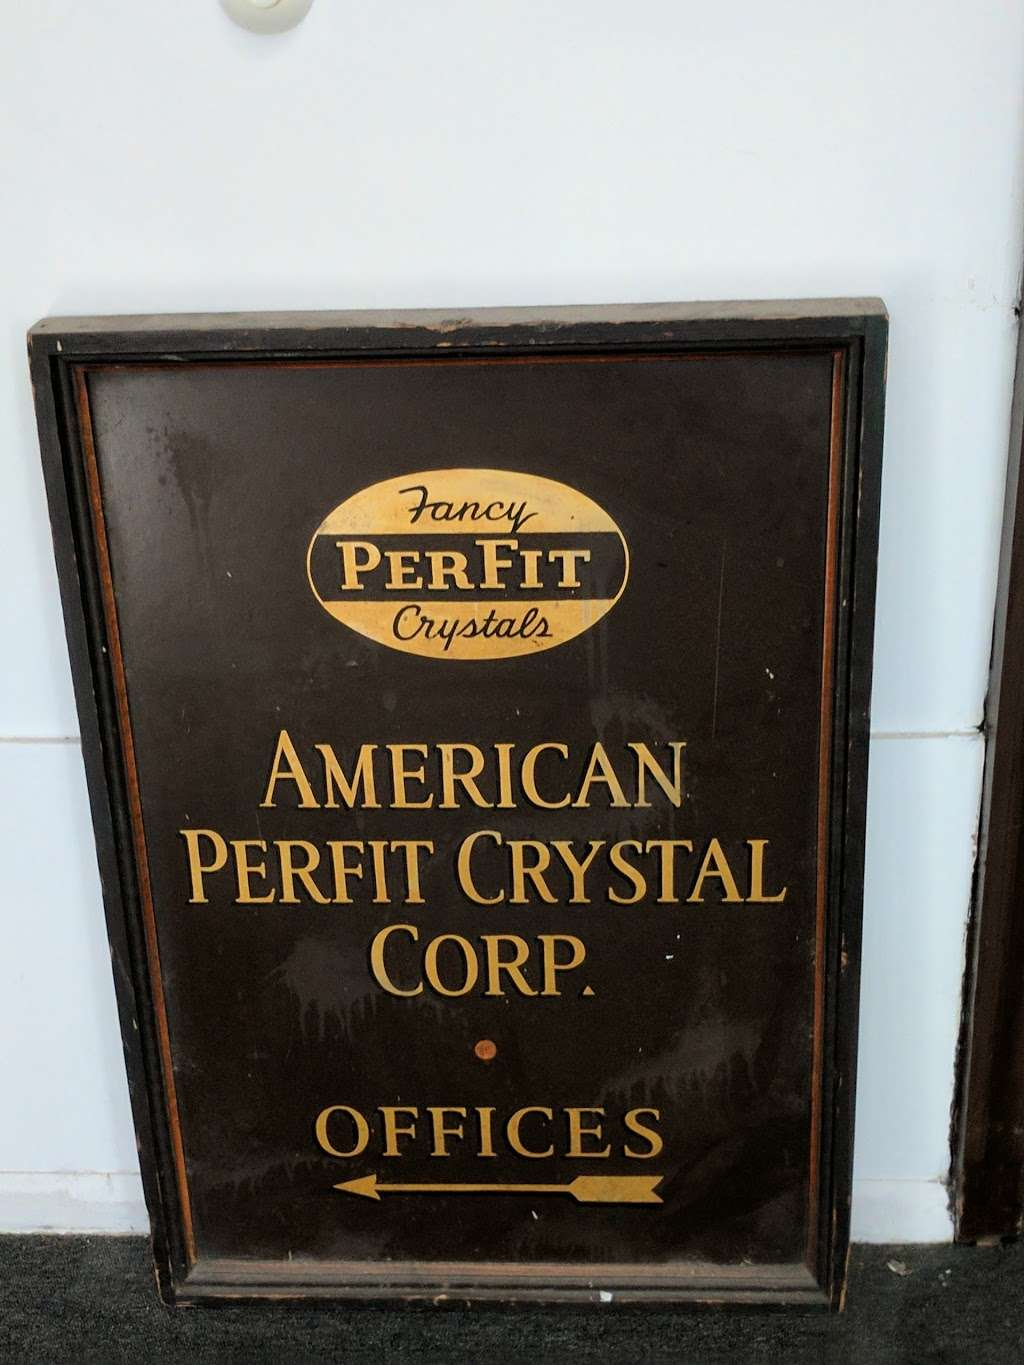 american perfit - home goods store  | Photo 1 of 2 | Address: 1100 River St, Ridgefield, NJ 07657, USA | Phone: (800) 345-0537